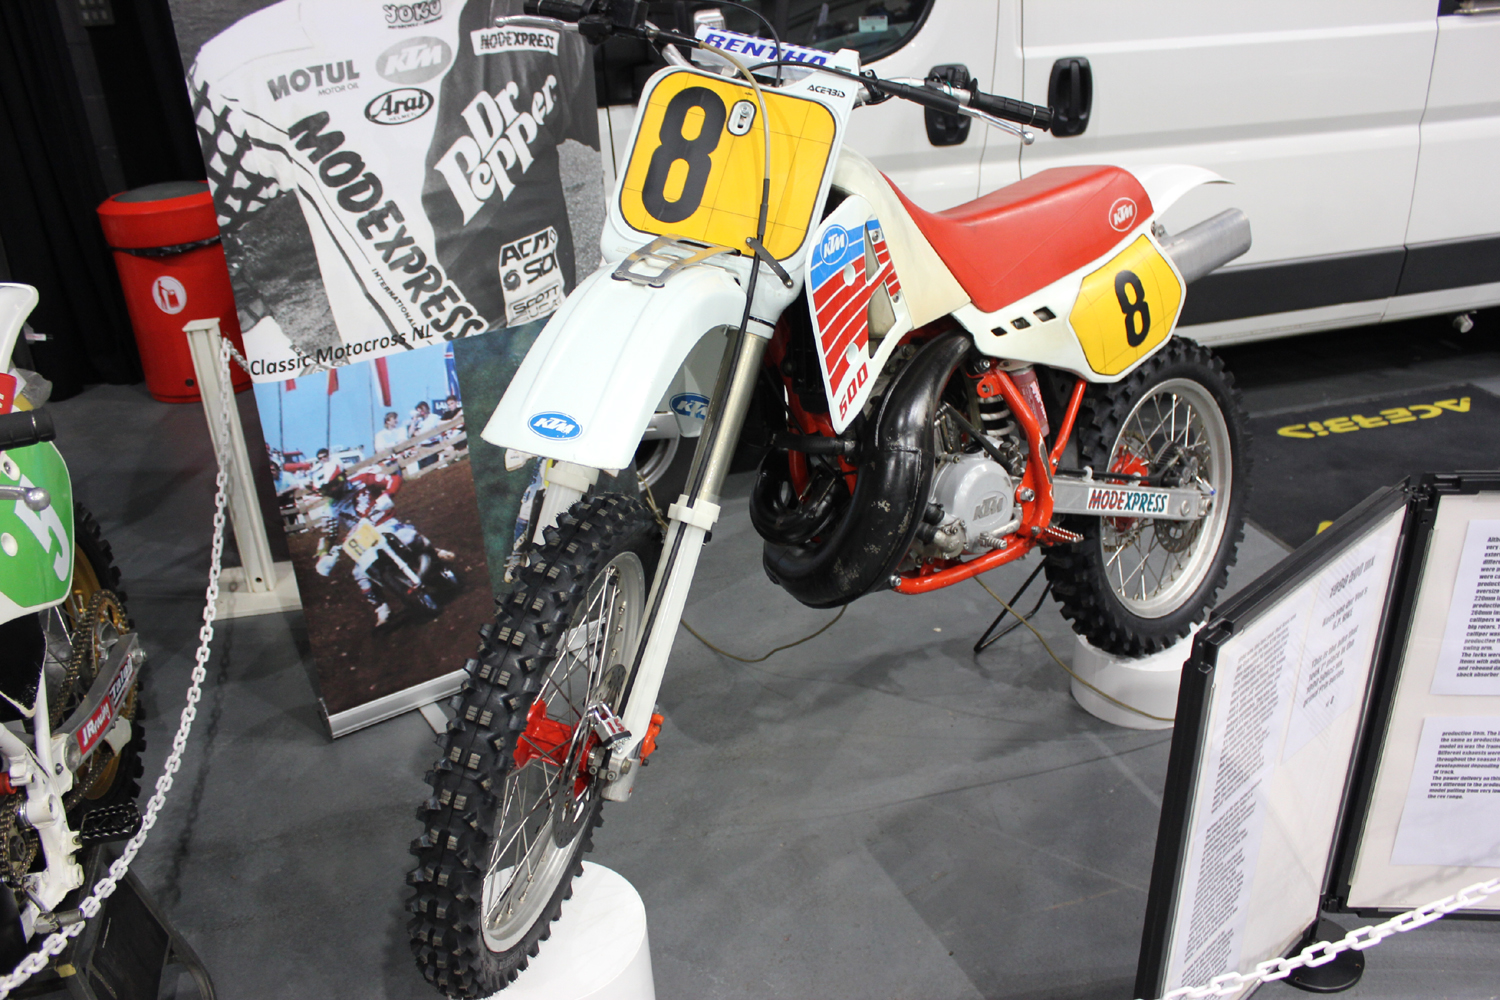 classicdirtbikerider.com-photo by Mr J-2015 Telford classic dirt bike show-KTM 500 EVO BIKE